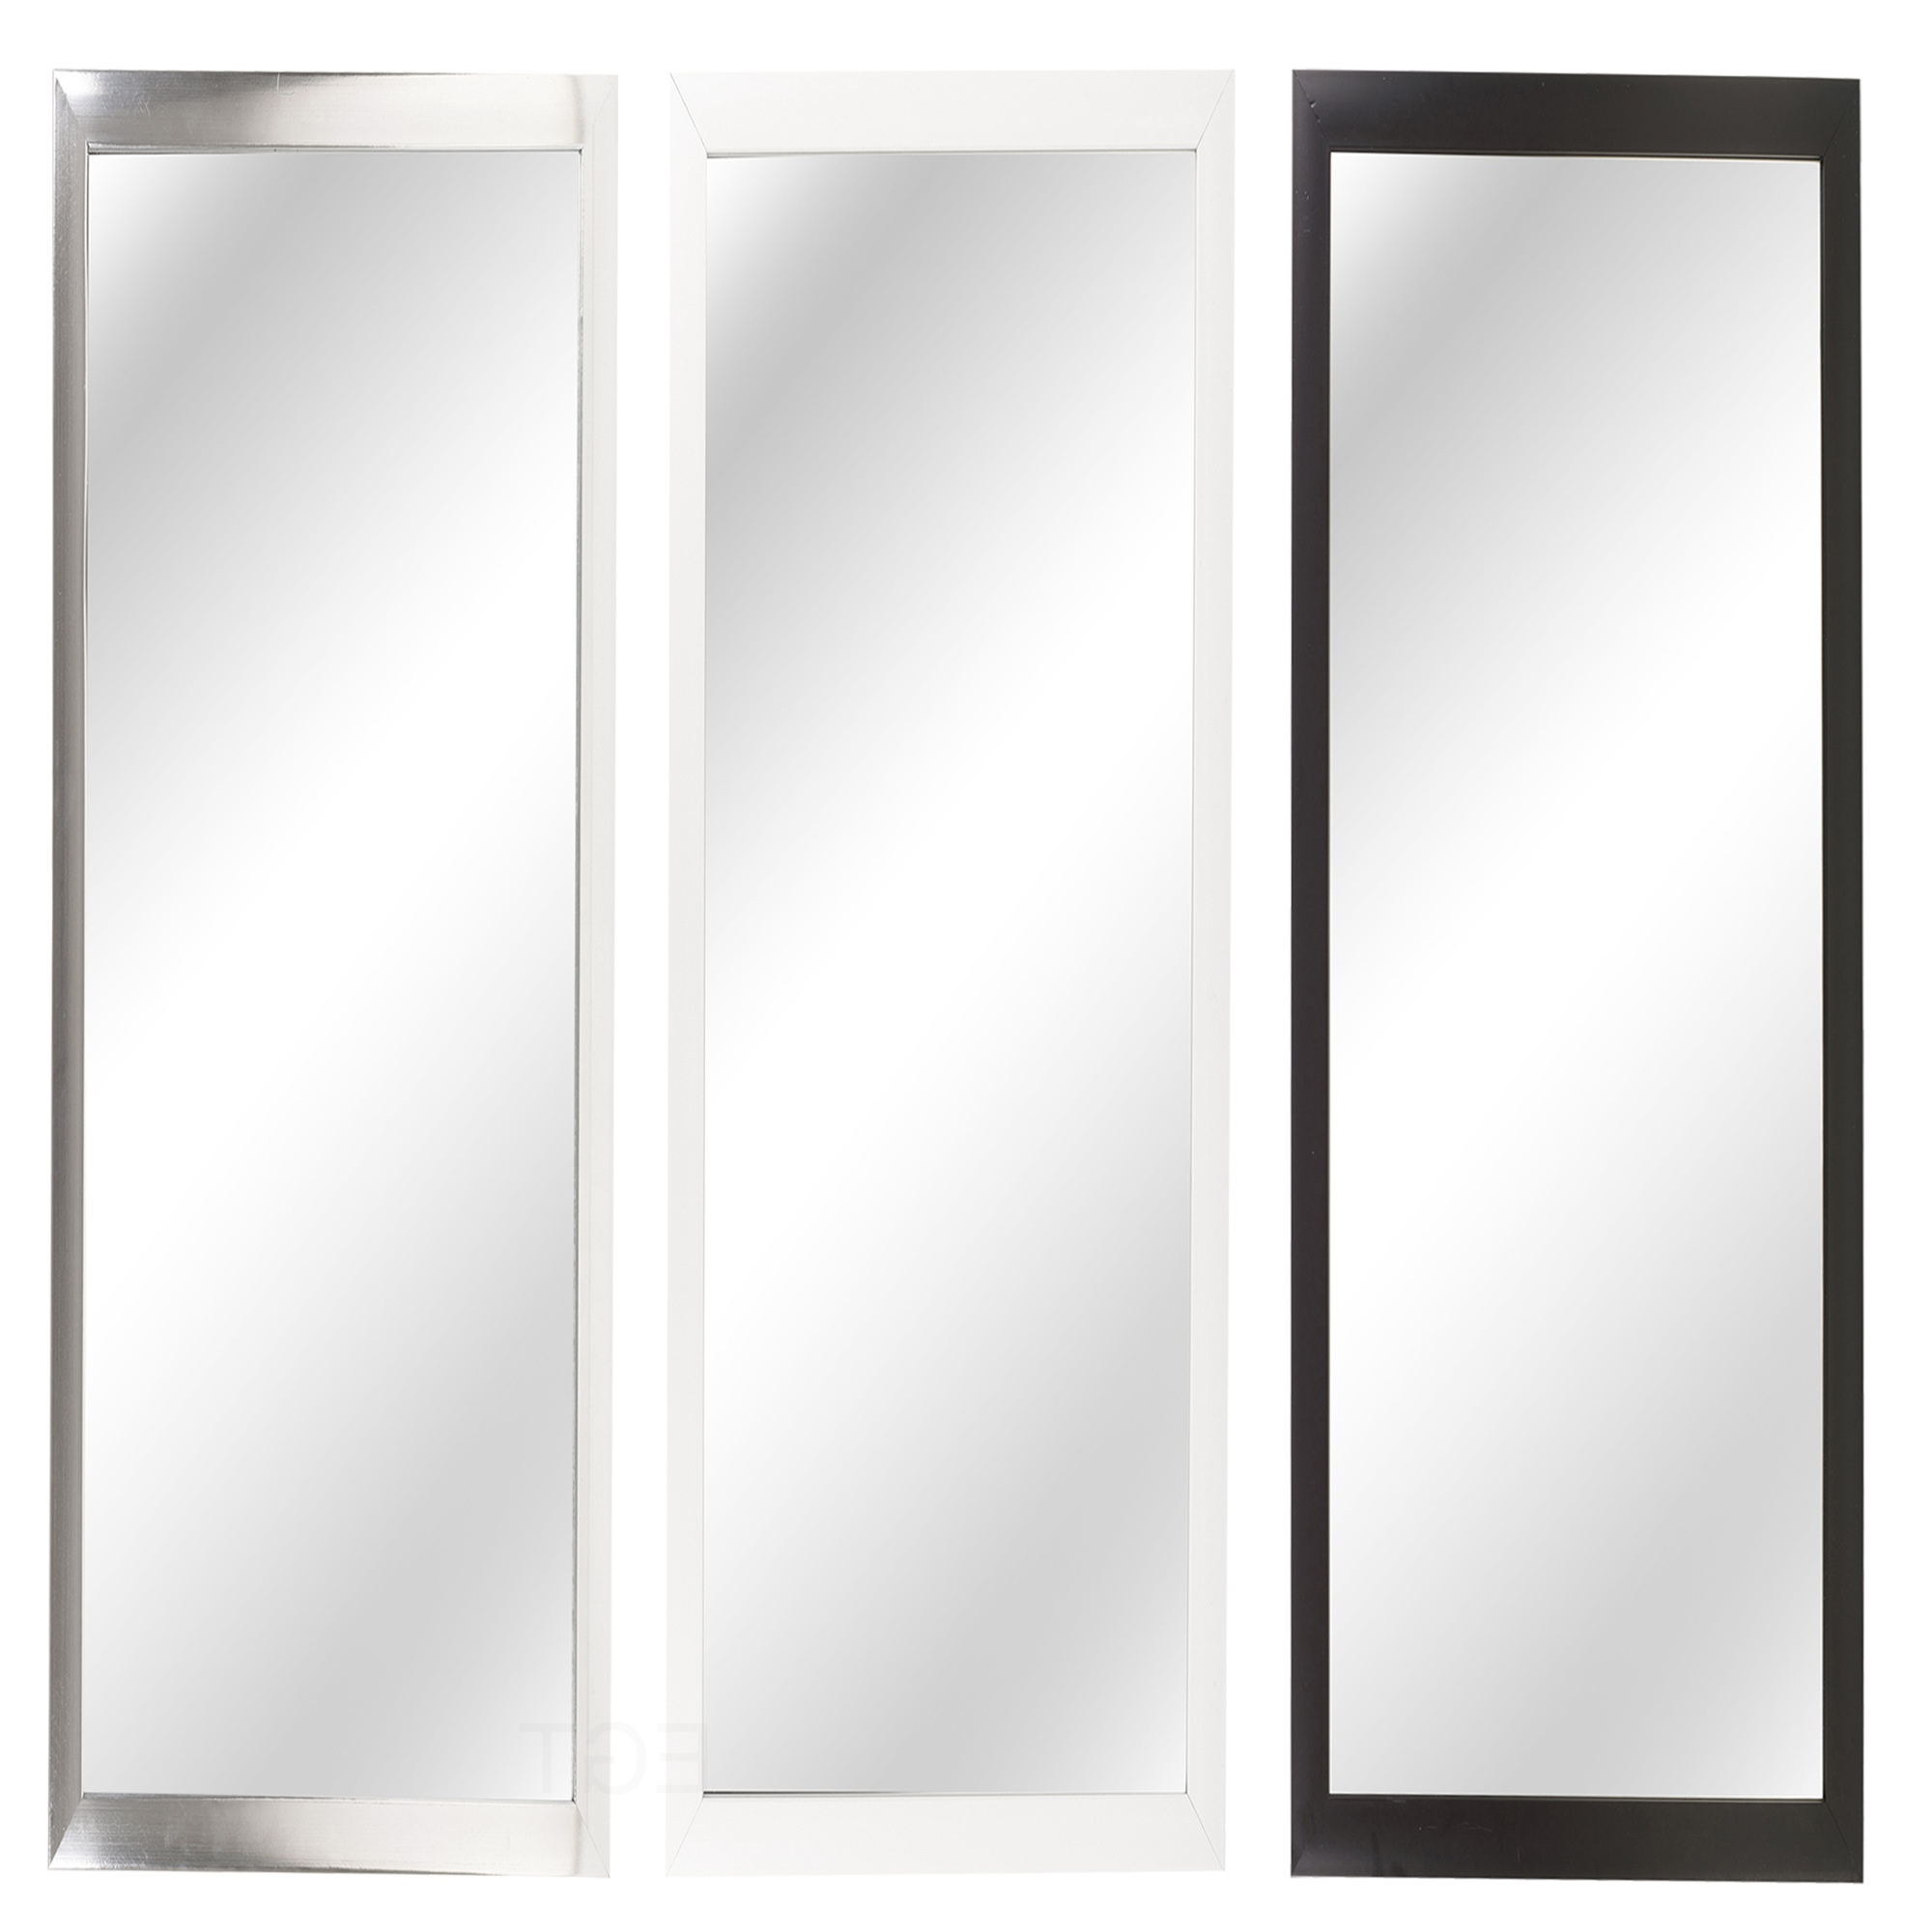 Details About Large Long Wall Mirror Leaner Full Length Floor Bedroom Furniture Hanging Dress Within 2019 White Long Wall Mirrors (View 8 of 20)